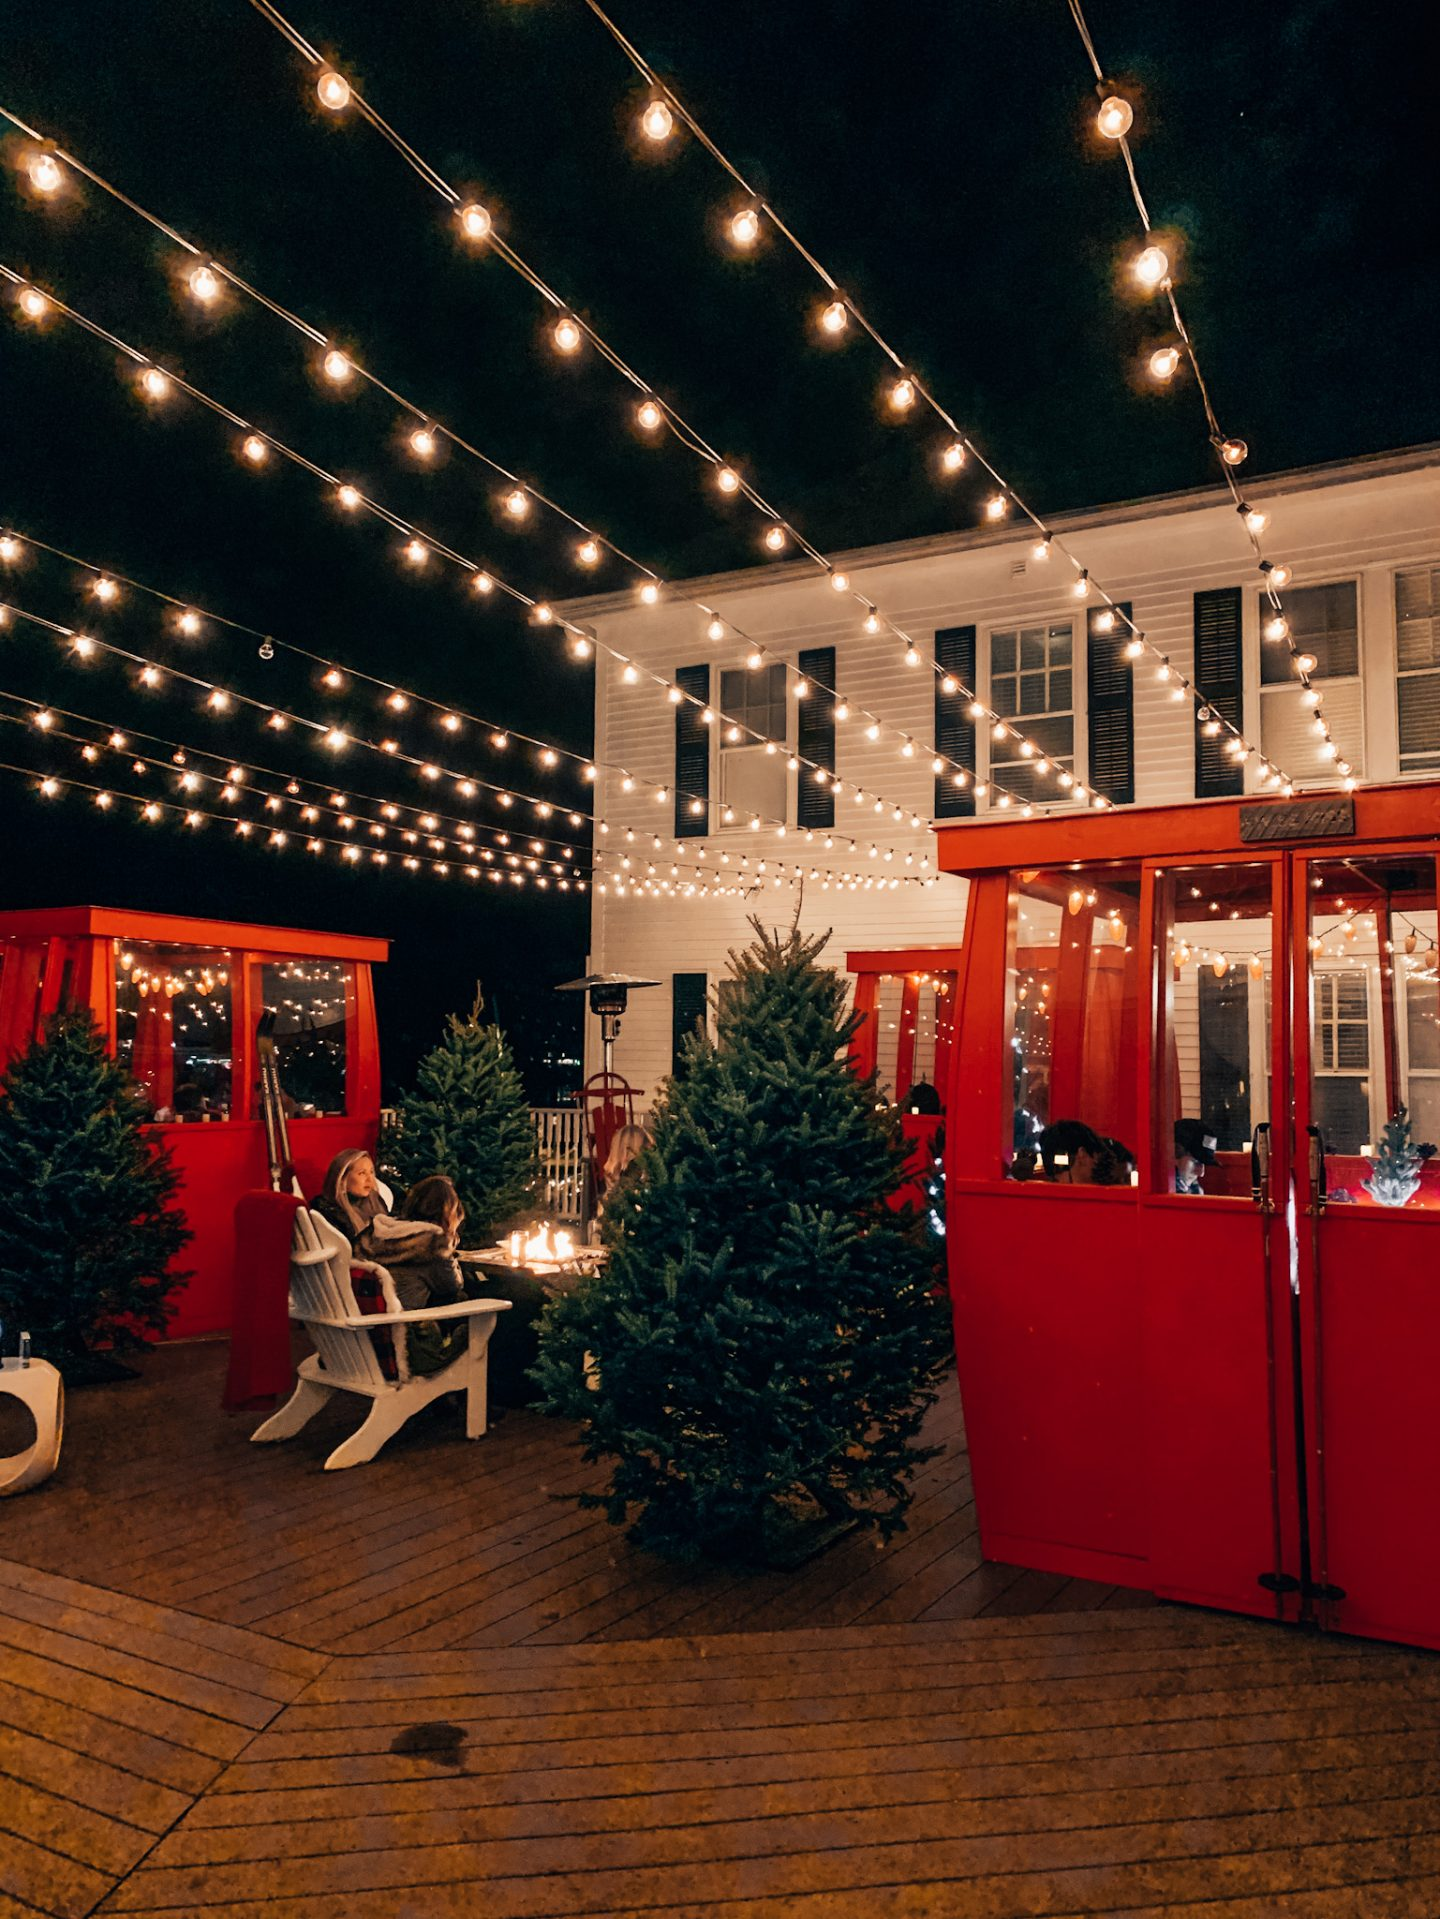 5 Best Places To Visit During The Holidays In New England